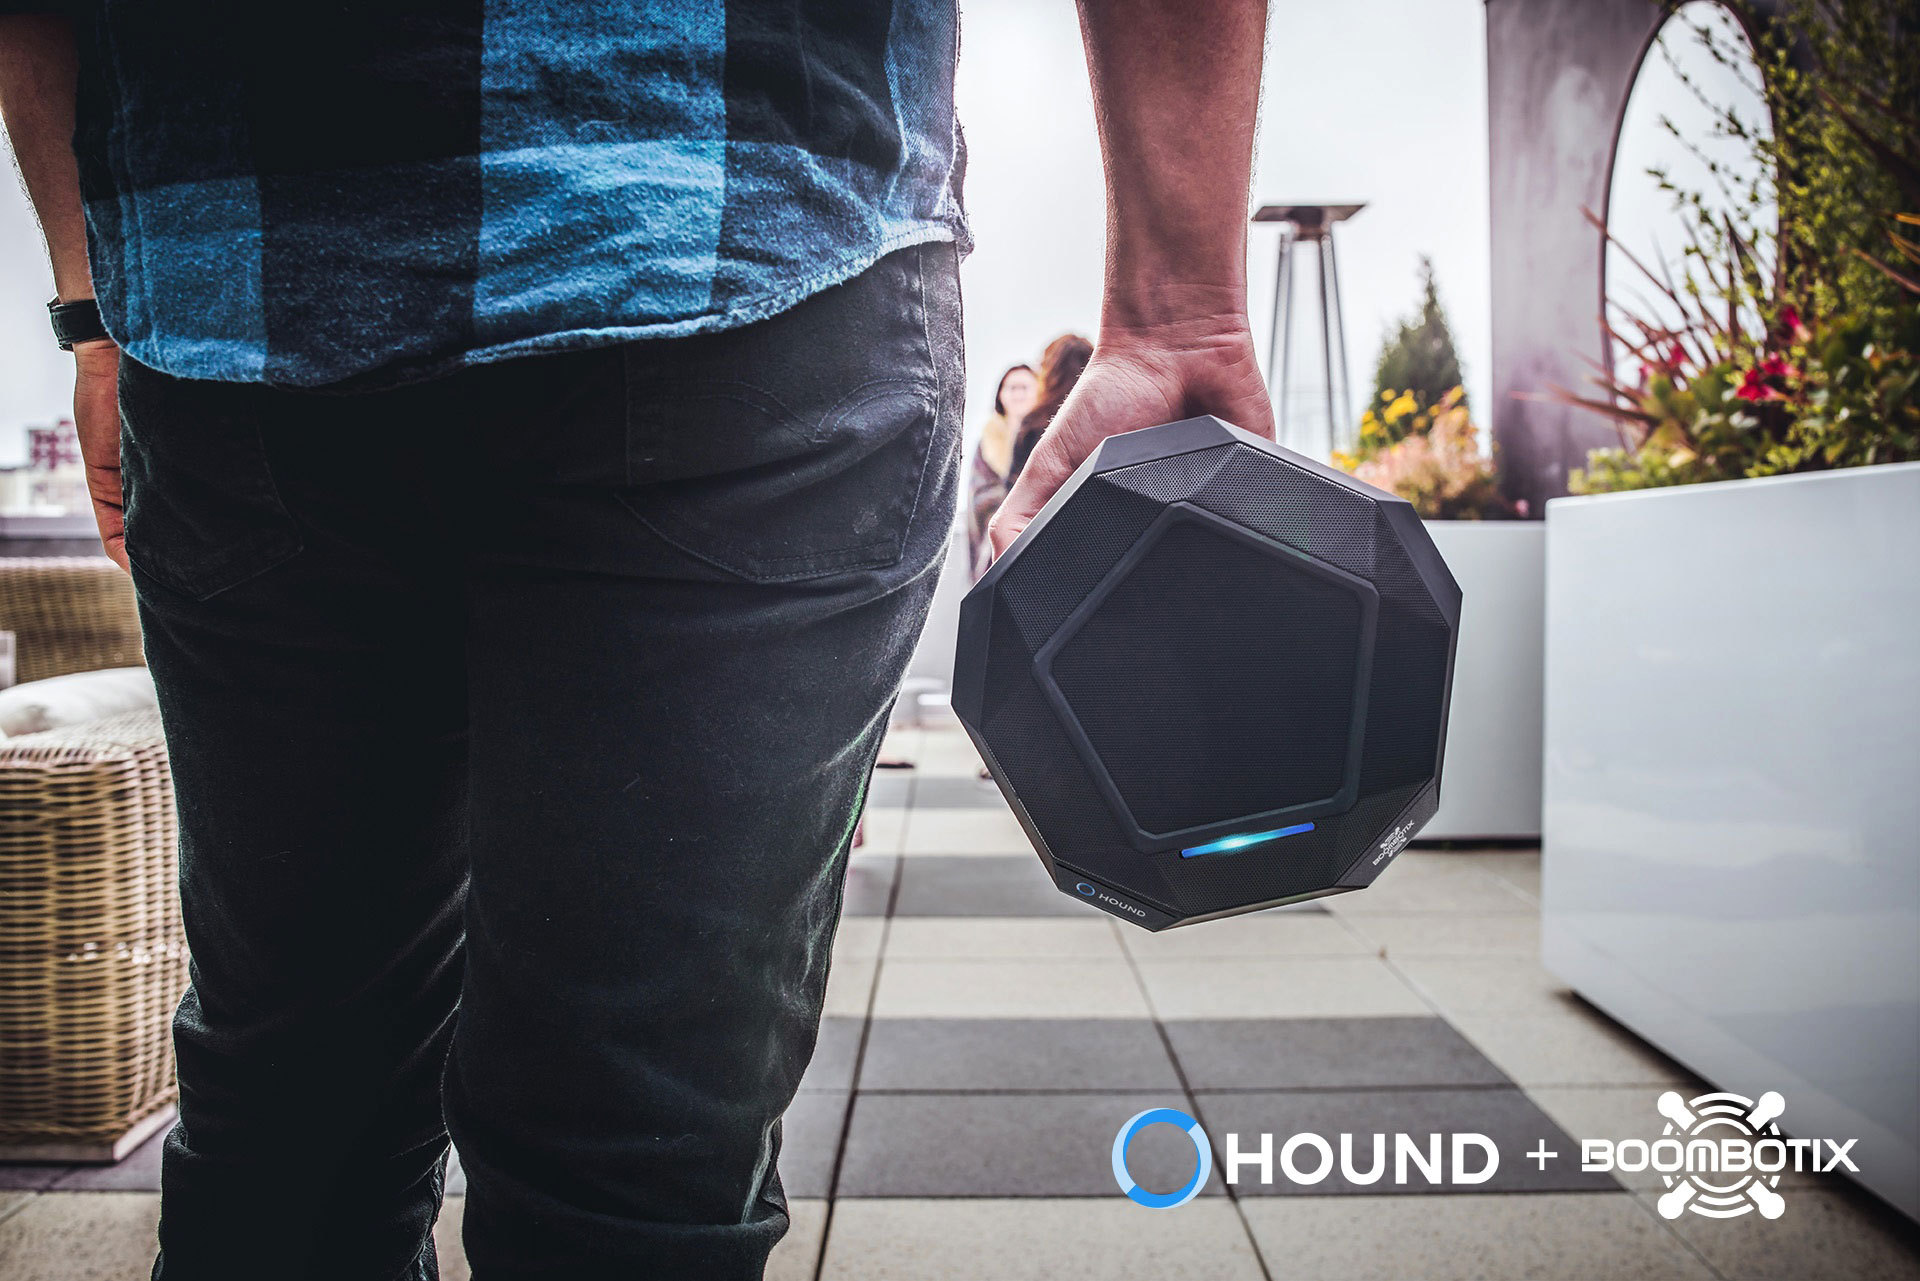 Experience big sound in a portable, smart speaker with Hound voice interaction. (Photo: Business Wire)